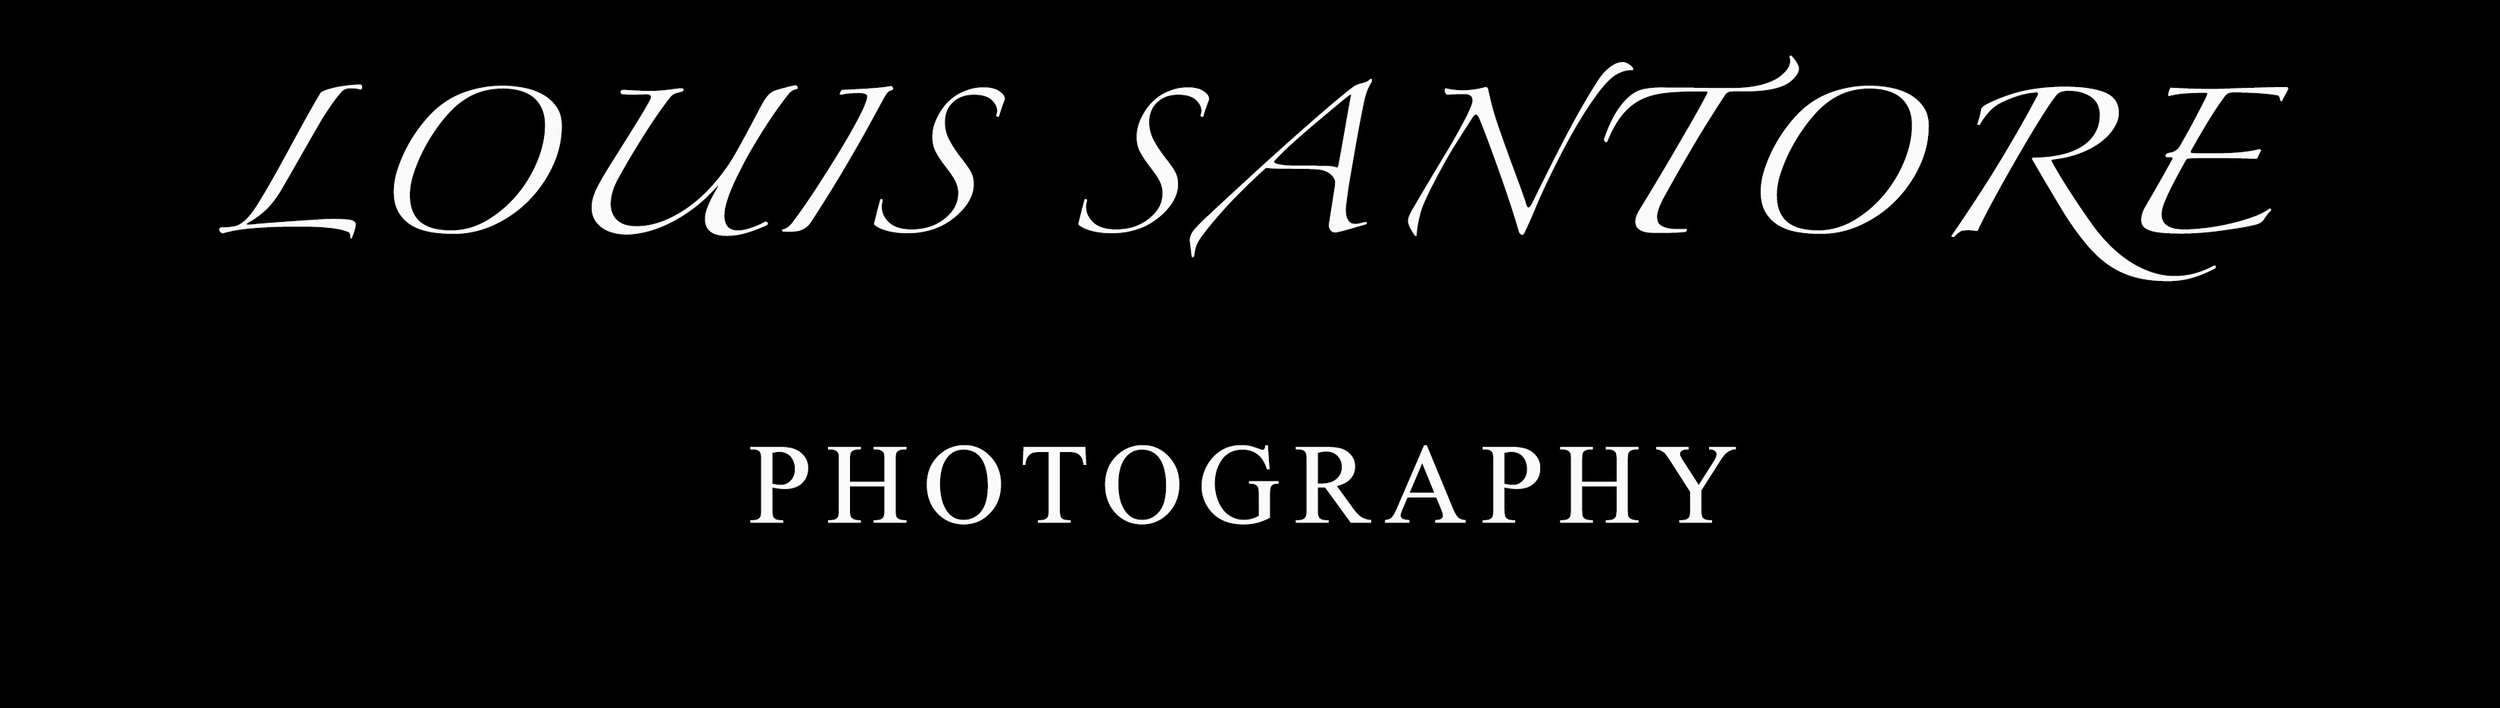 Louis Santore Photography